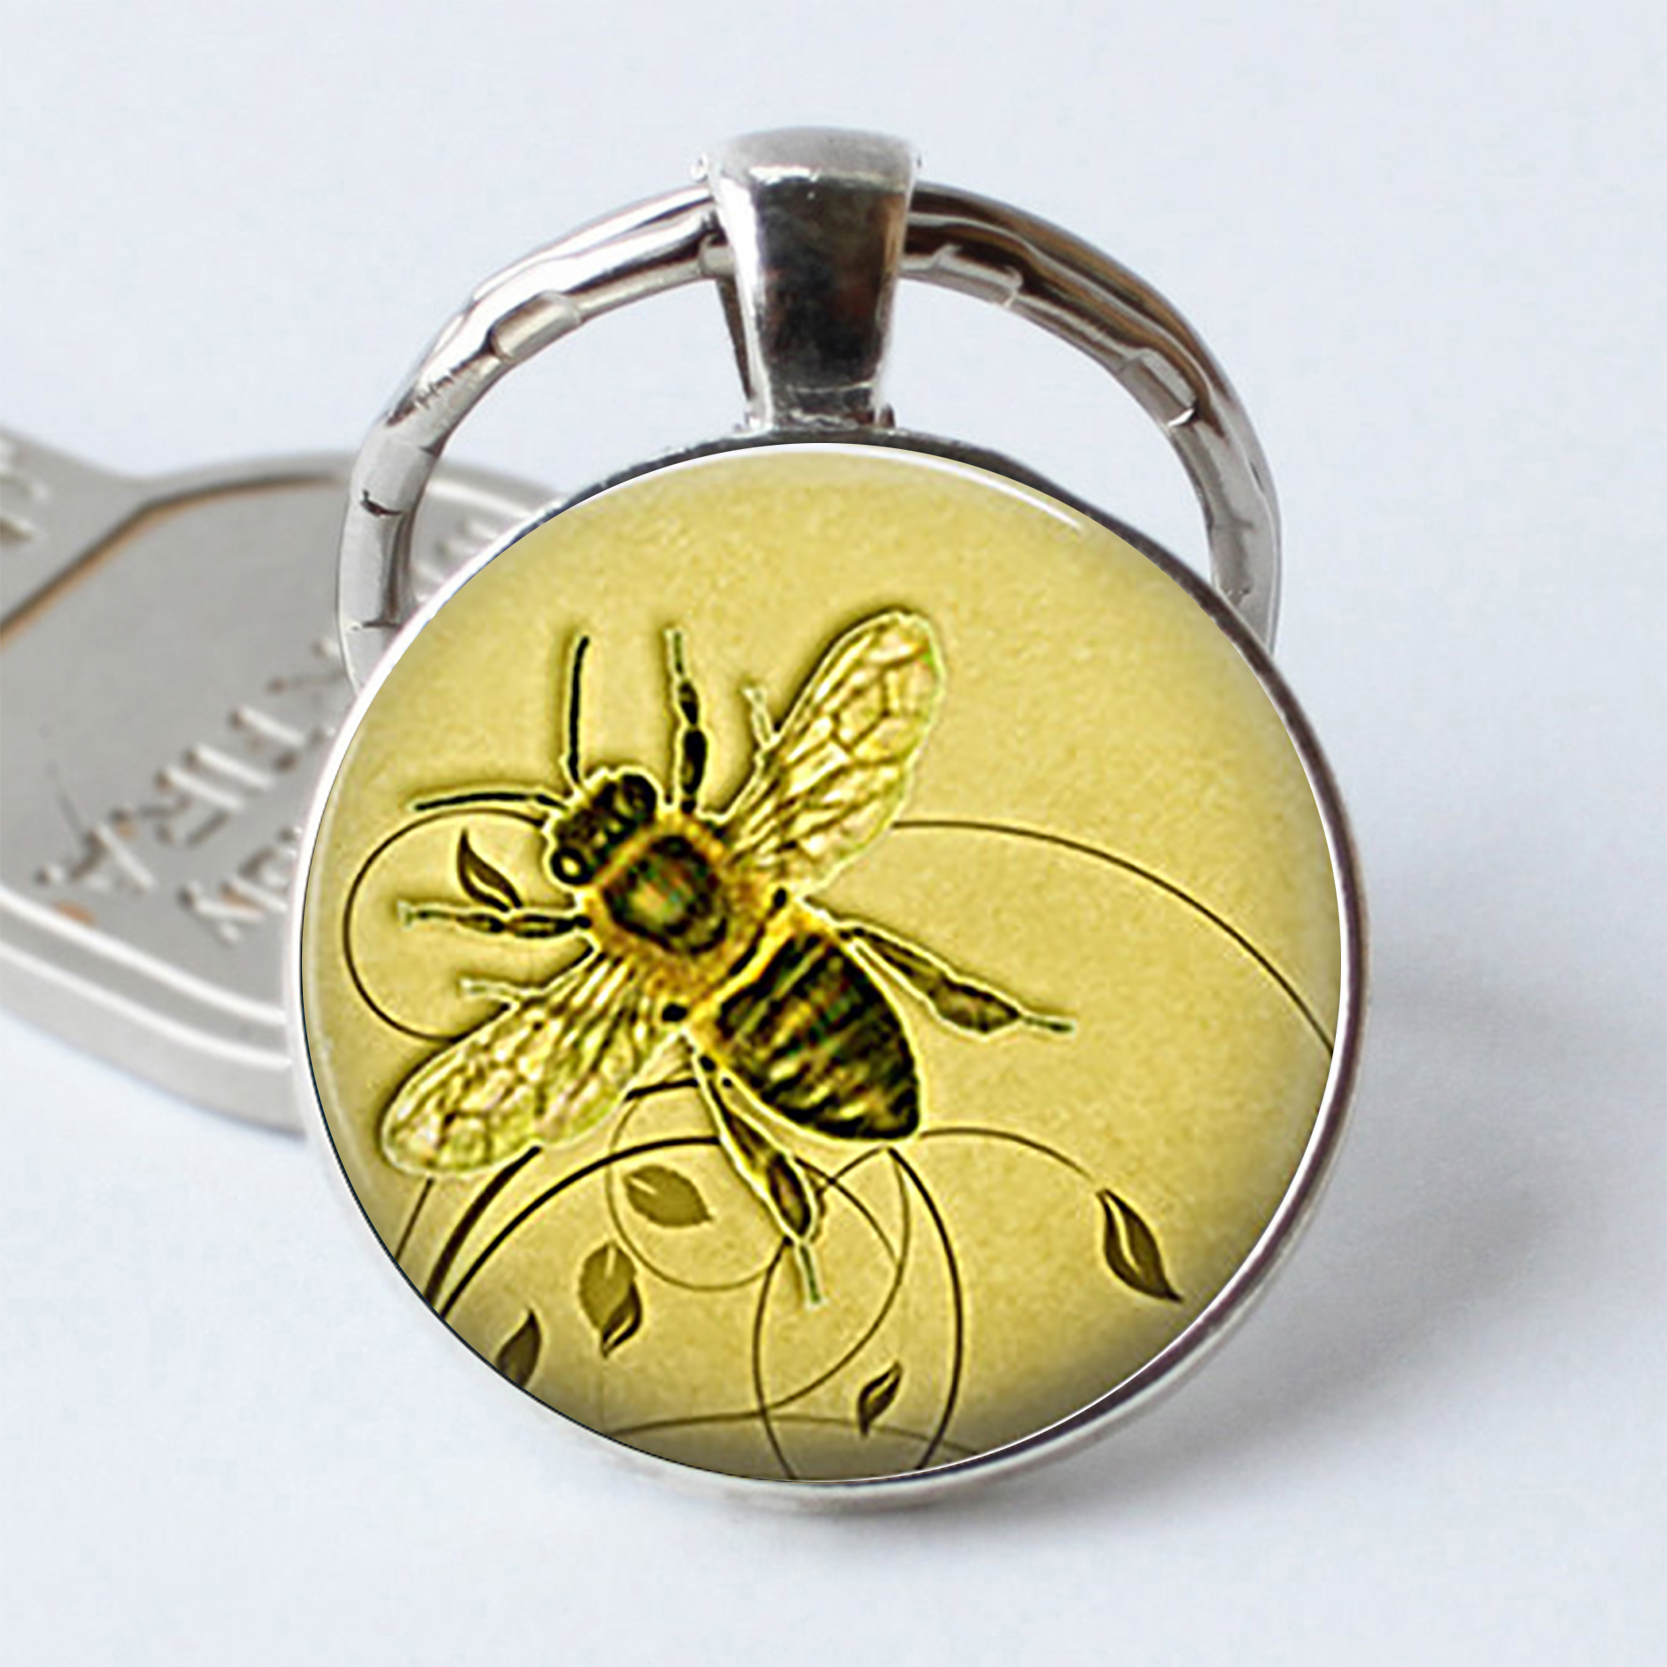 Honeybee Keychain Honey Bee Cabochon Glass Keyring Honey Bee Jewelry Beekeeper Gift Apiarist Gift Honey Bee Key Chain Key Ring